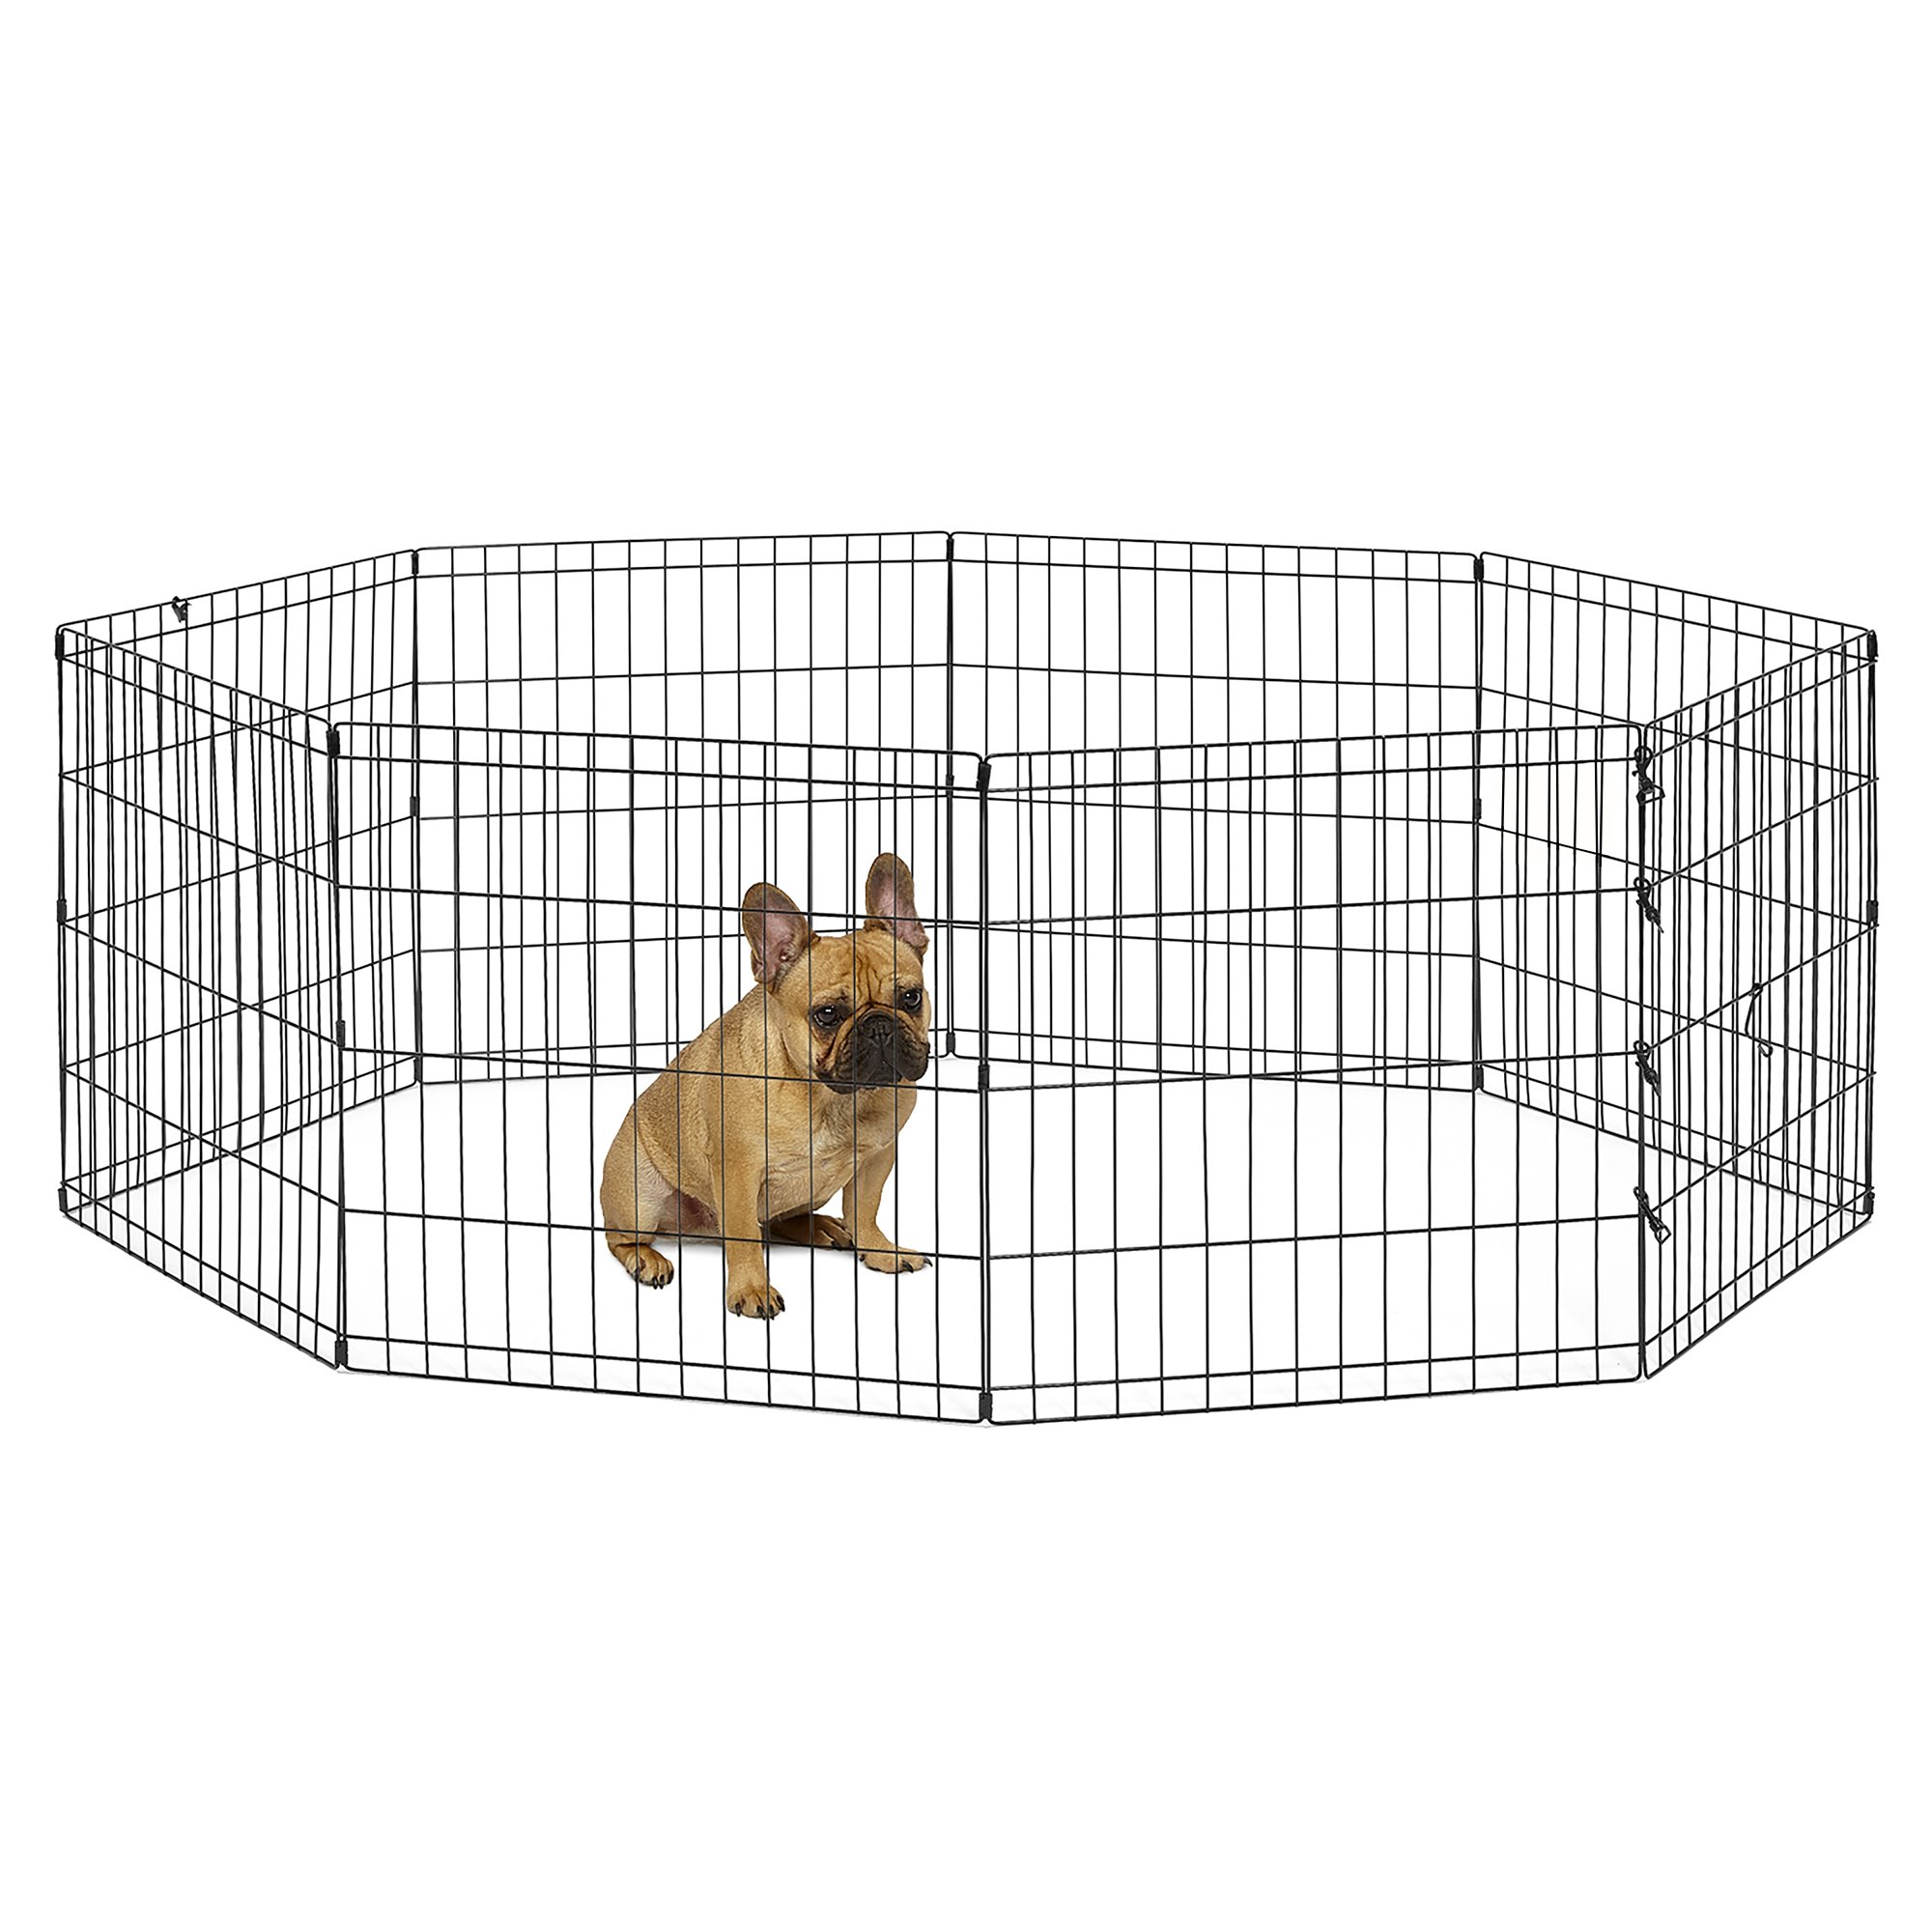 New World Pet Products B550-24 Foldable Exercise Pet Playpen, Black, Small/24'' x 24''